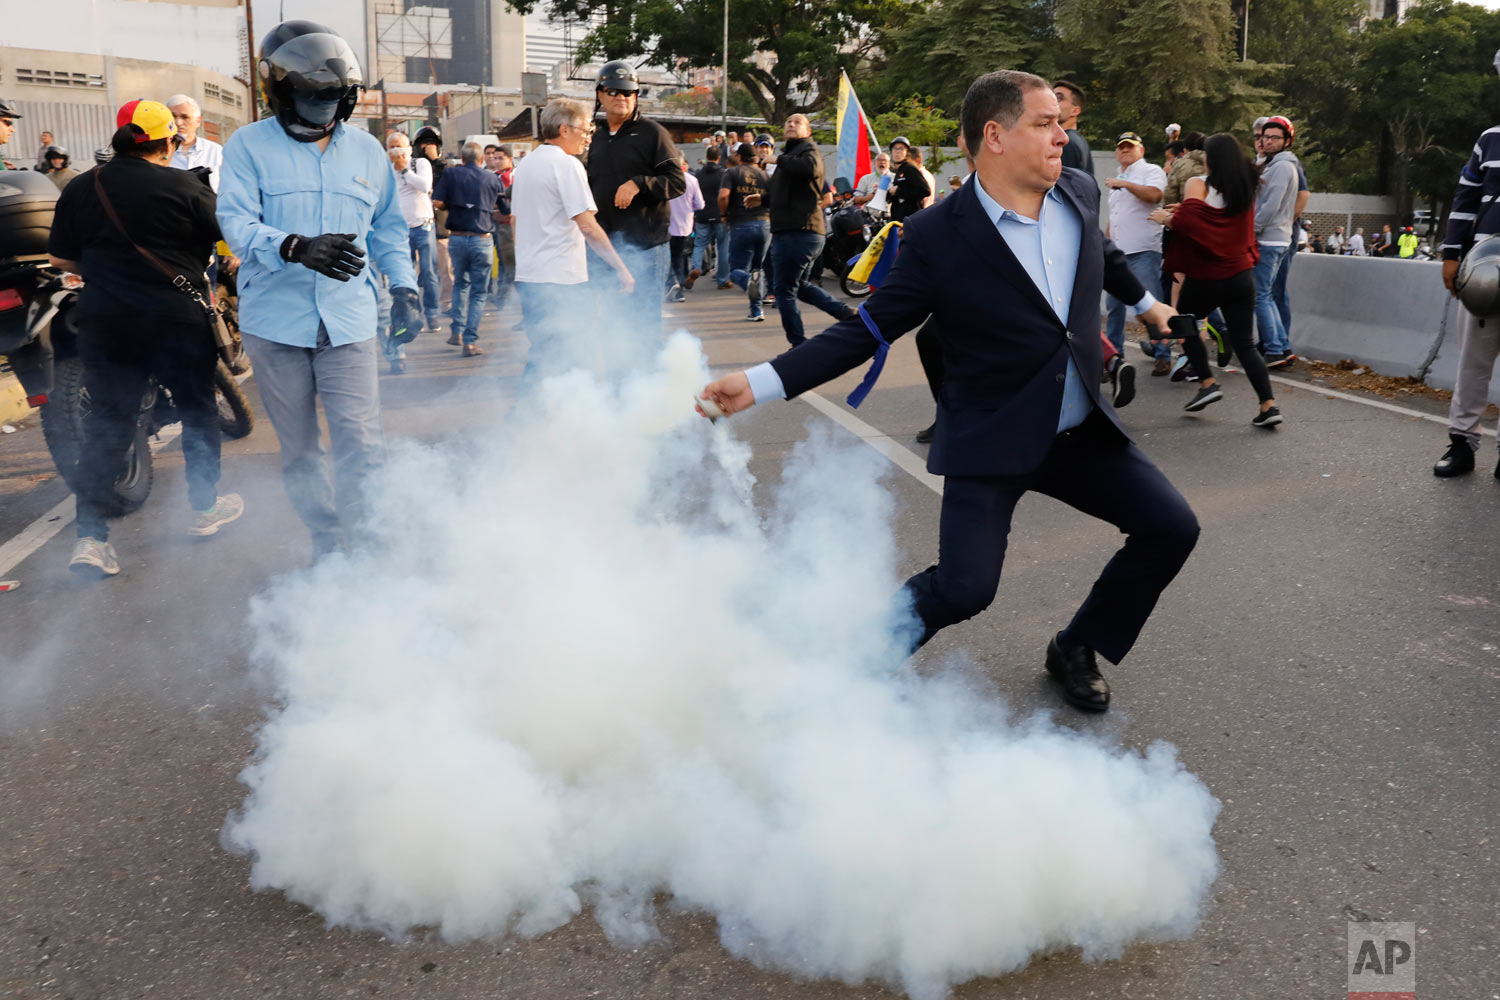 An opponent to Venezuela's President Nicolas Maduro returns a tear gas canister to soldiers who launched it at a small group of civilians and rebel troops gathered outside La Carlota air base in Caracas, Venezuela, April 30, 2019. (AP Photo/Ariana Cubillos)